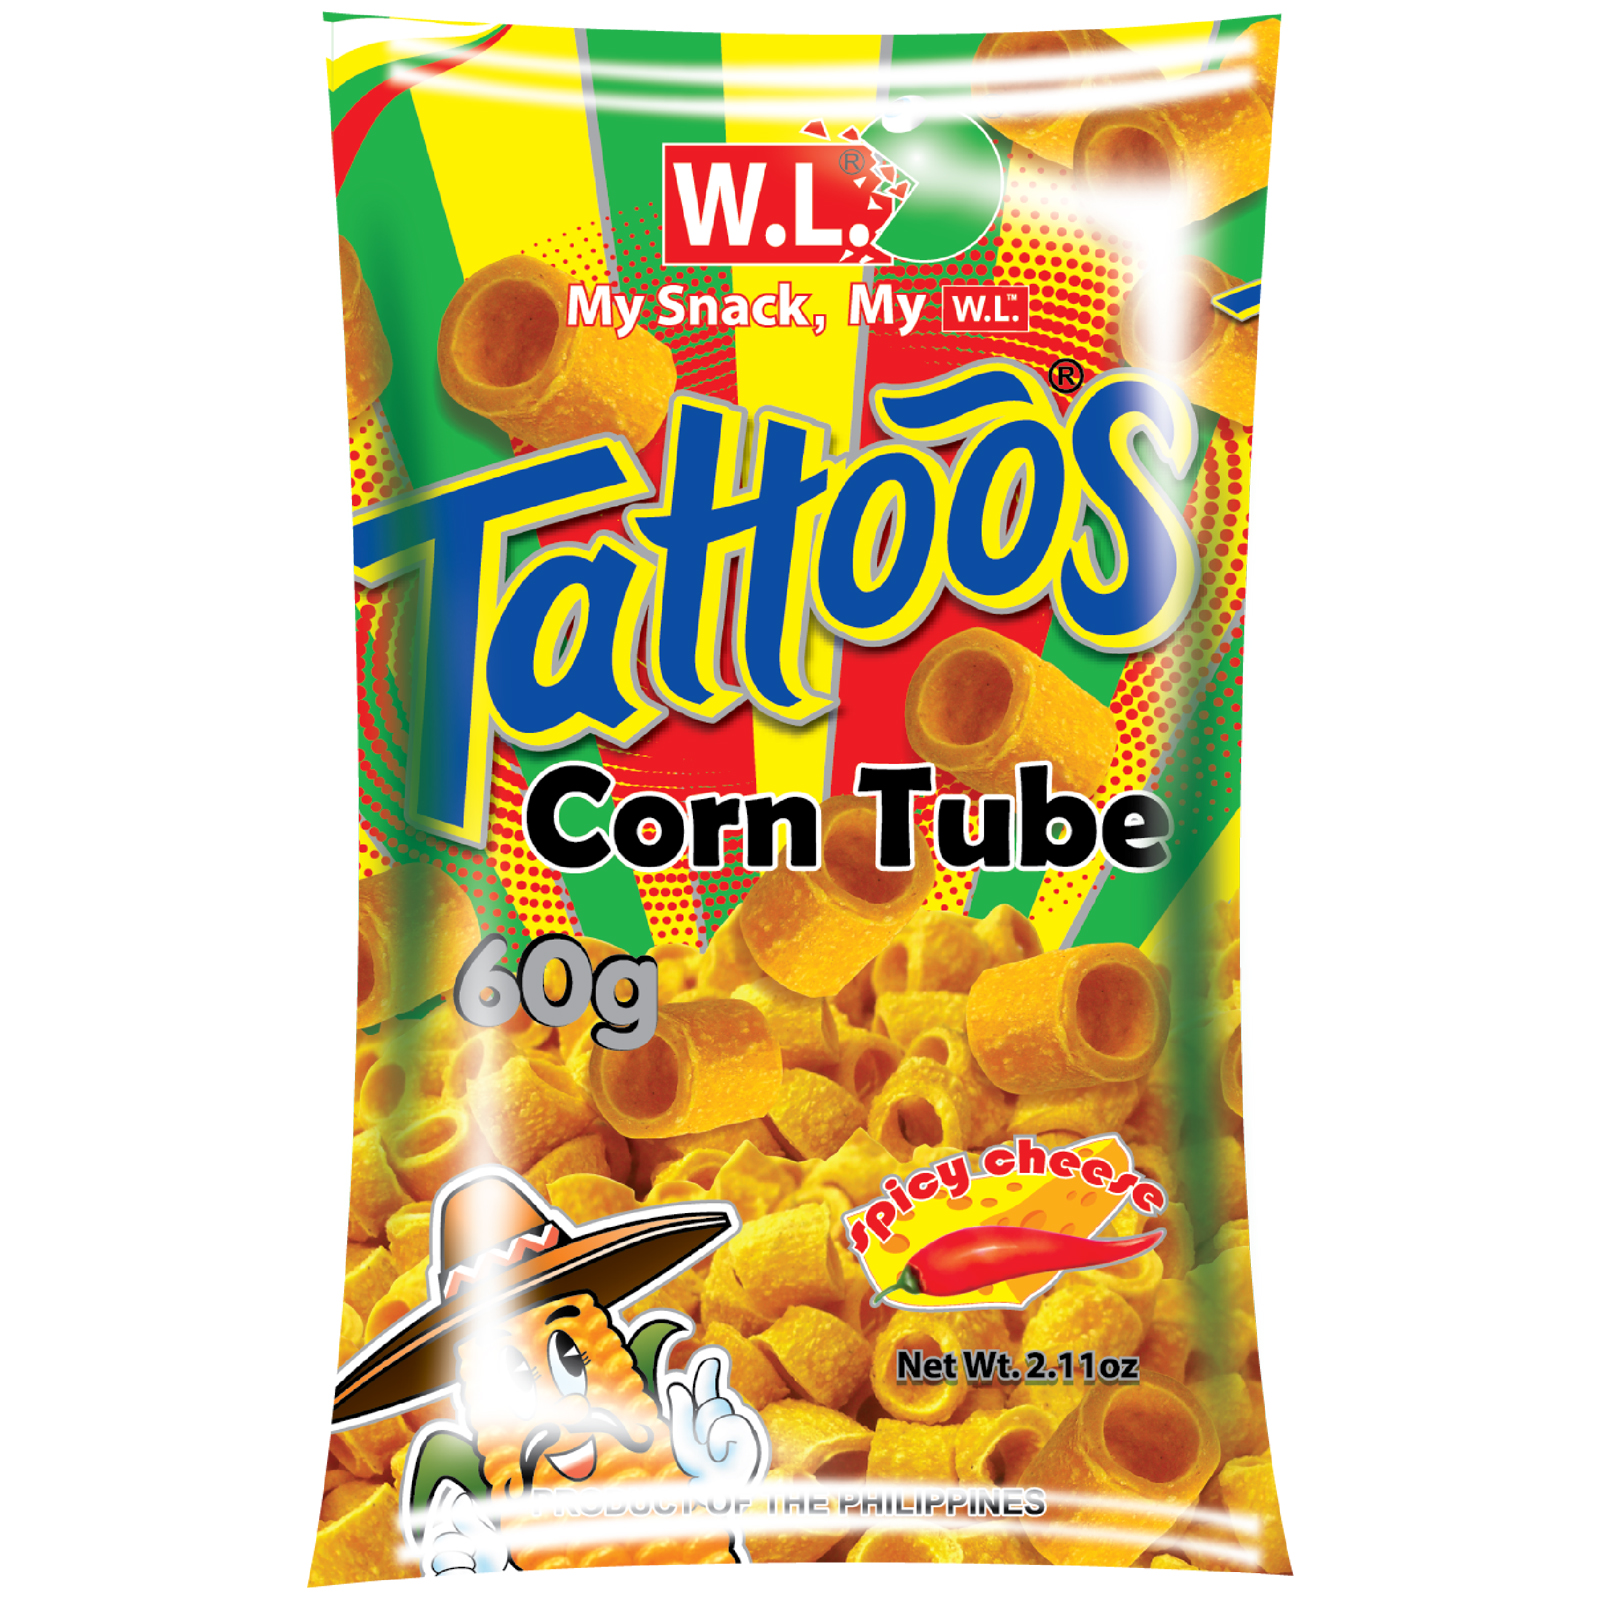 Tattoos Corn Tube Spicy Cheese Flavor 60g